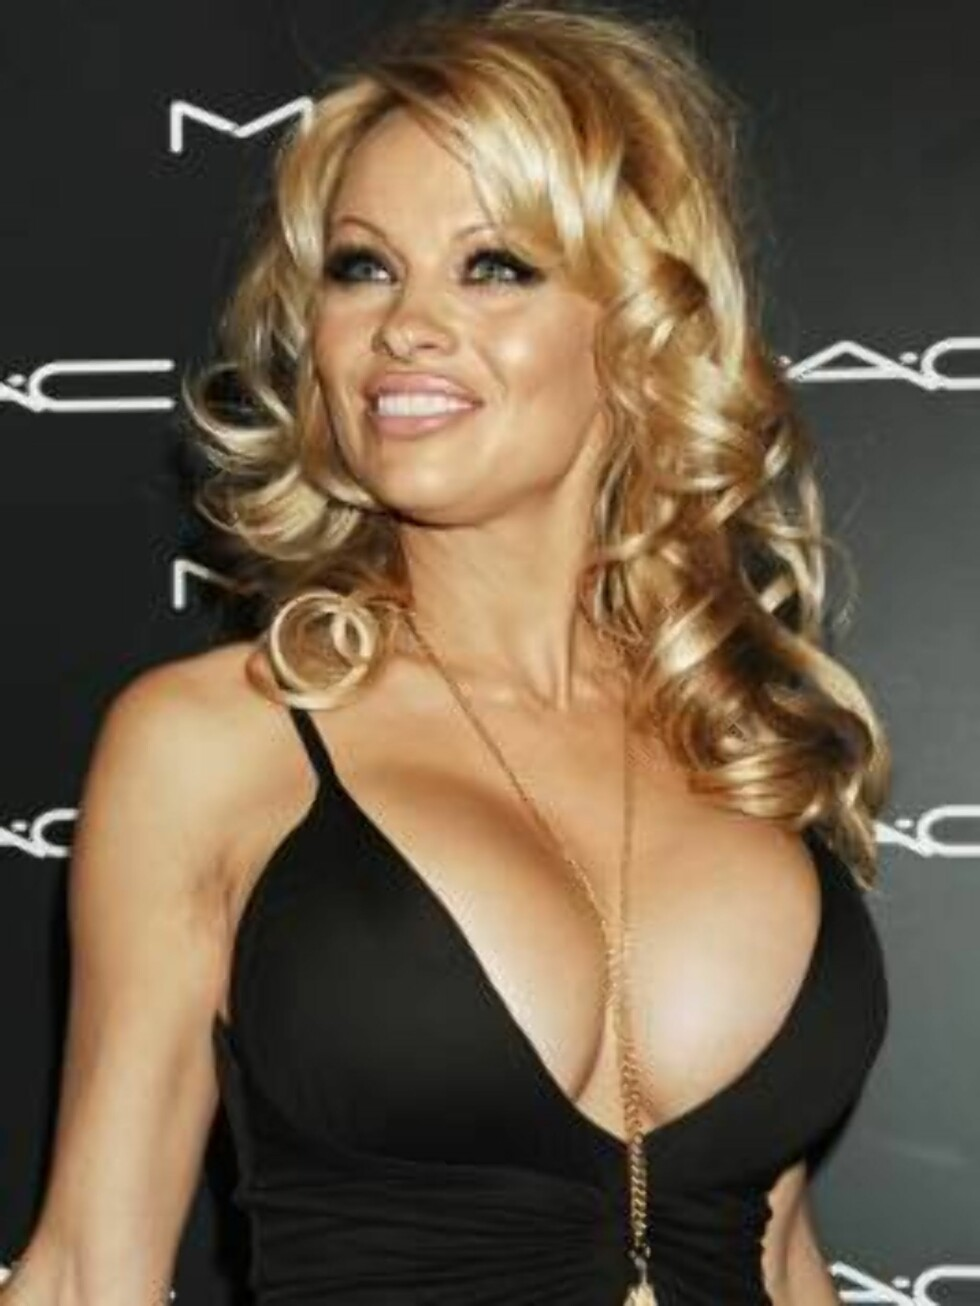 Pamela Anderson arrives for the Makeup Art Cosmetics (MAC) Chinese New Year party and kick off event for the Olympus Fashion week,Thursday, Feb. 2, 2006, in New York. (AP Photo/ Louis Lanzano) Foto: AP/Scanpix